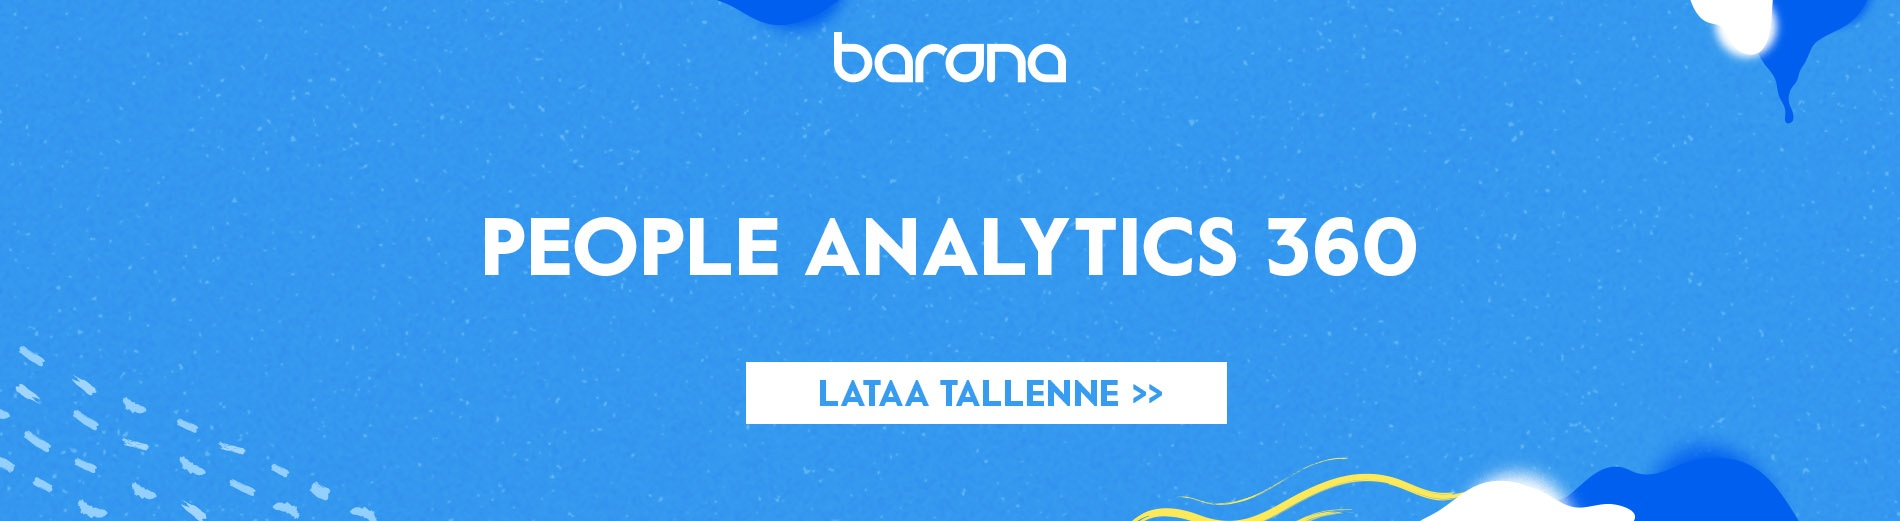 people analytics CTA